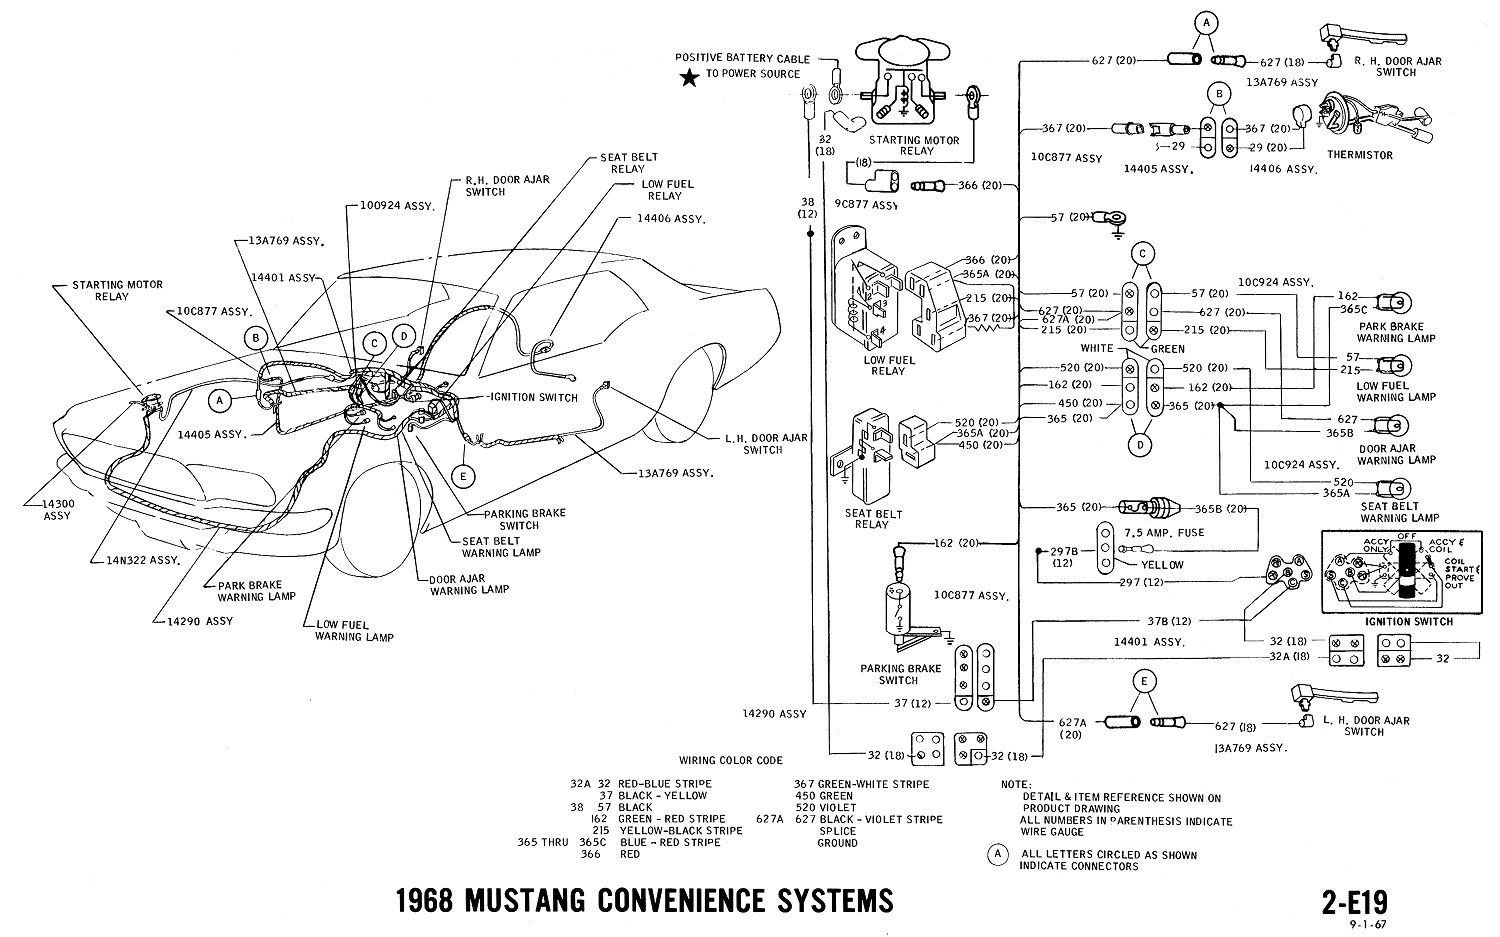 1970 Ford Mustang Alternator Wiring Diagram Just 2010 F150 Trailer 1969 Schematic Circuit Light 1968 Diagrams